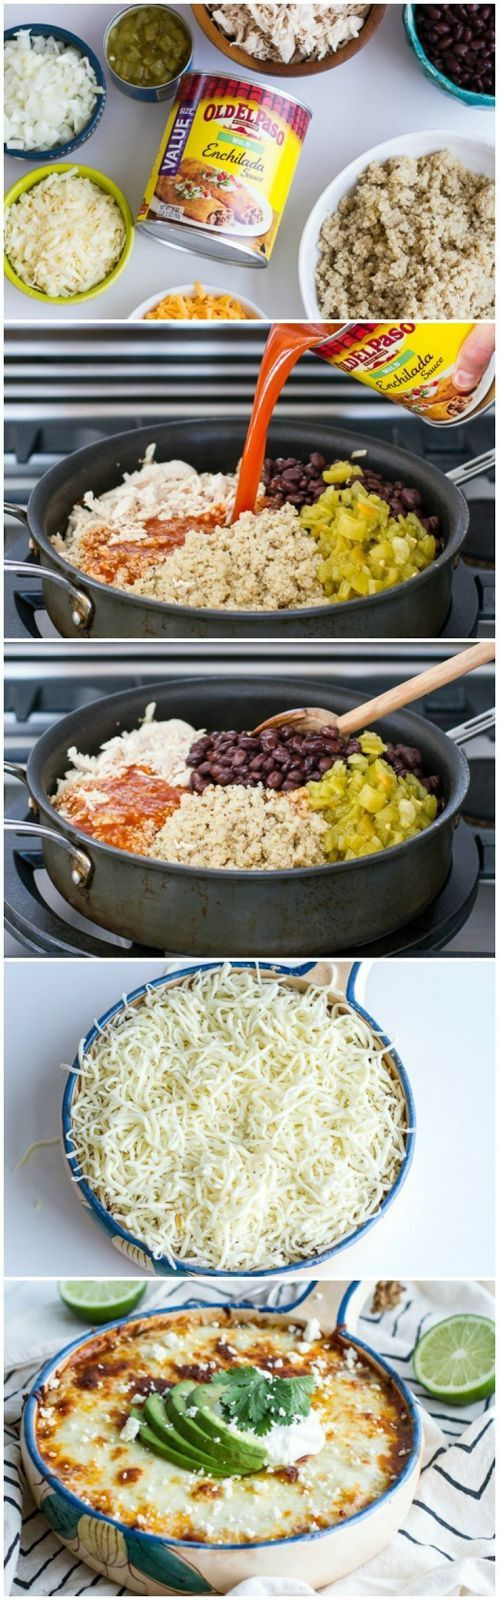 Chicken Enchilada Quinoa Bake #healthy #chicken #quinoa